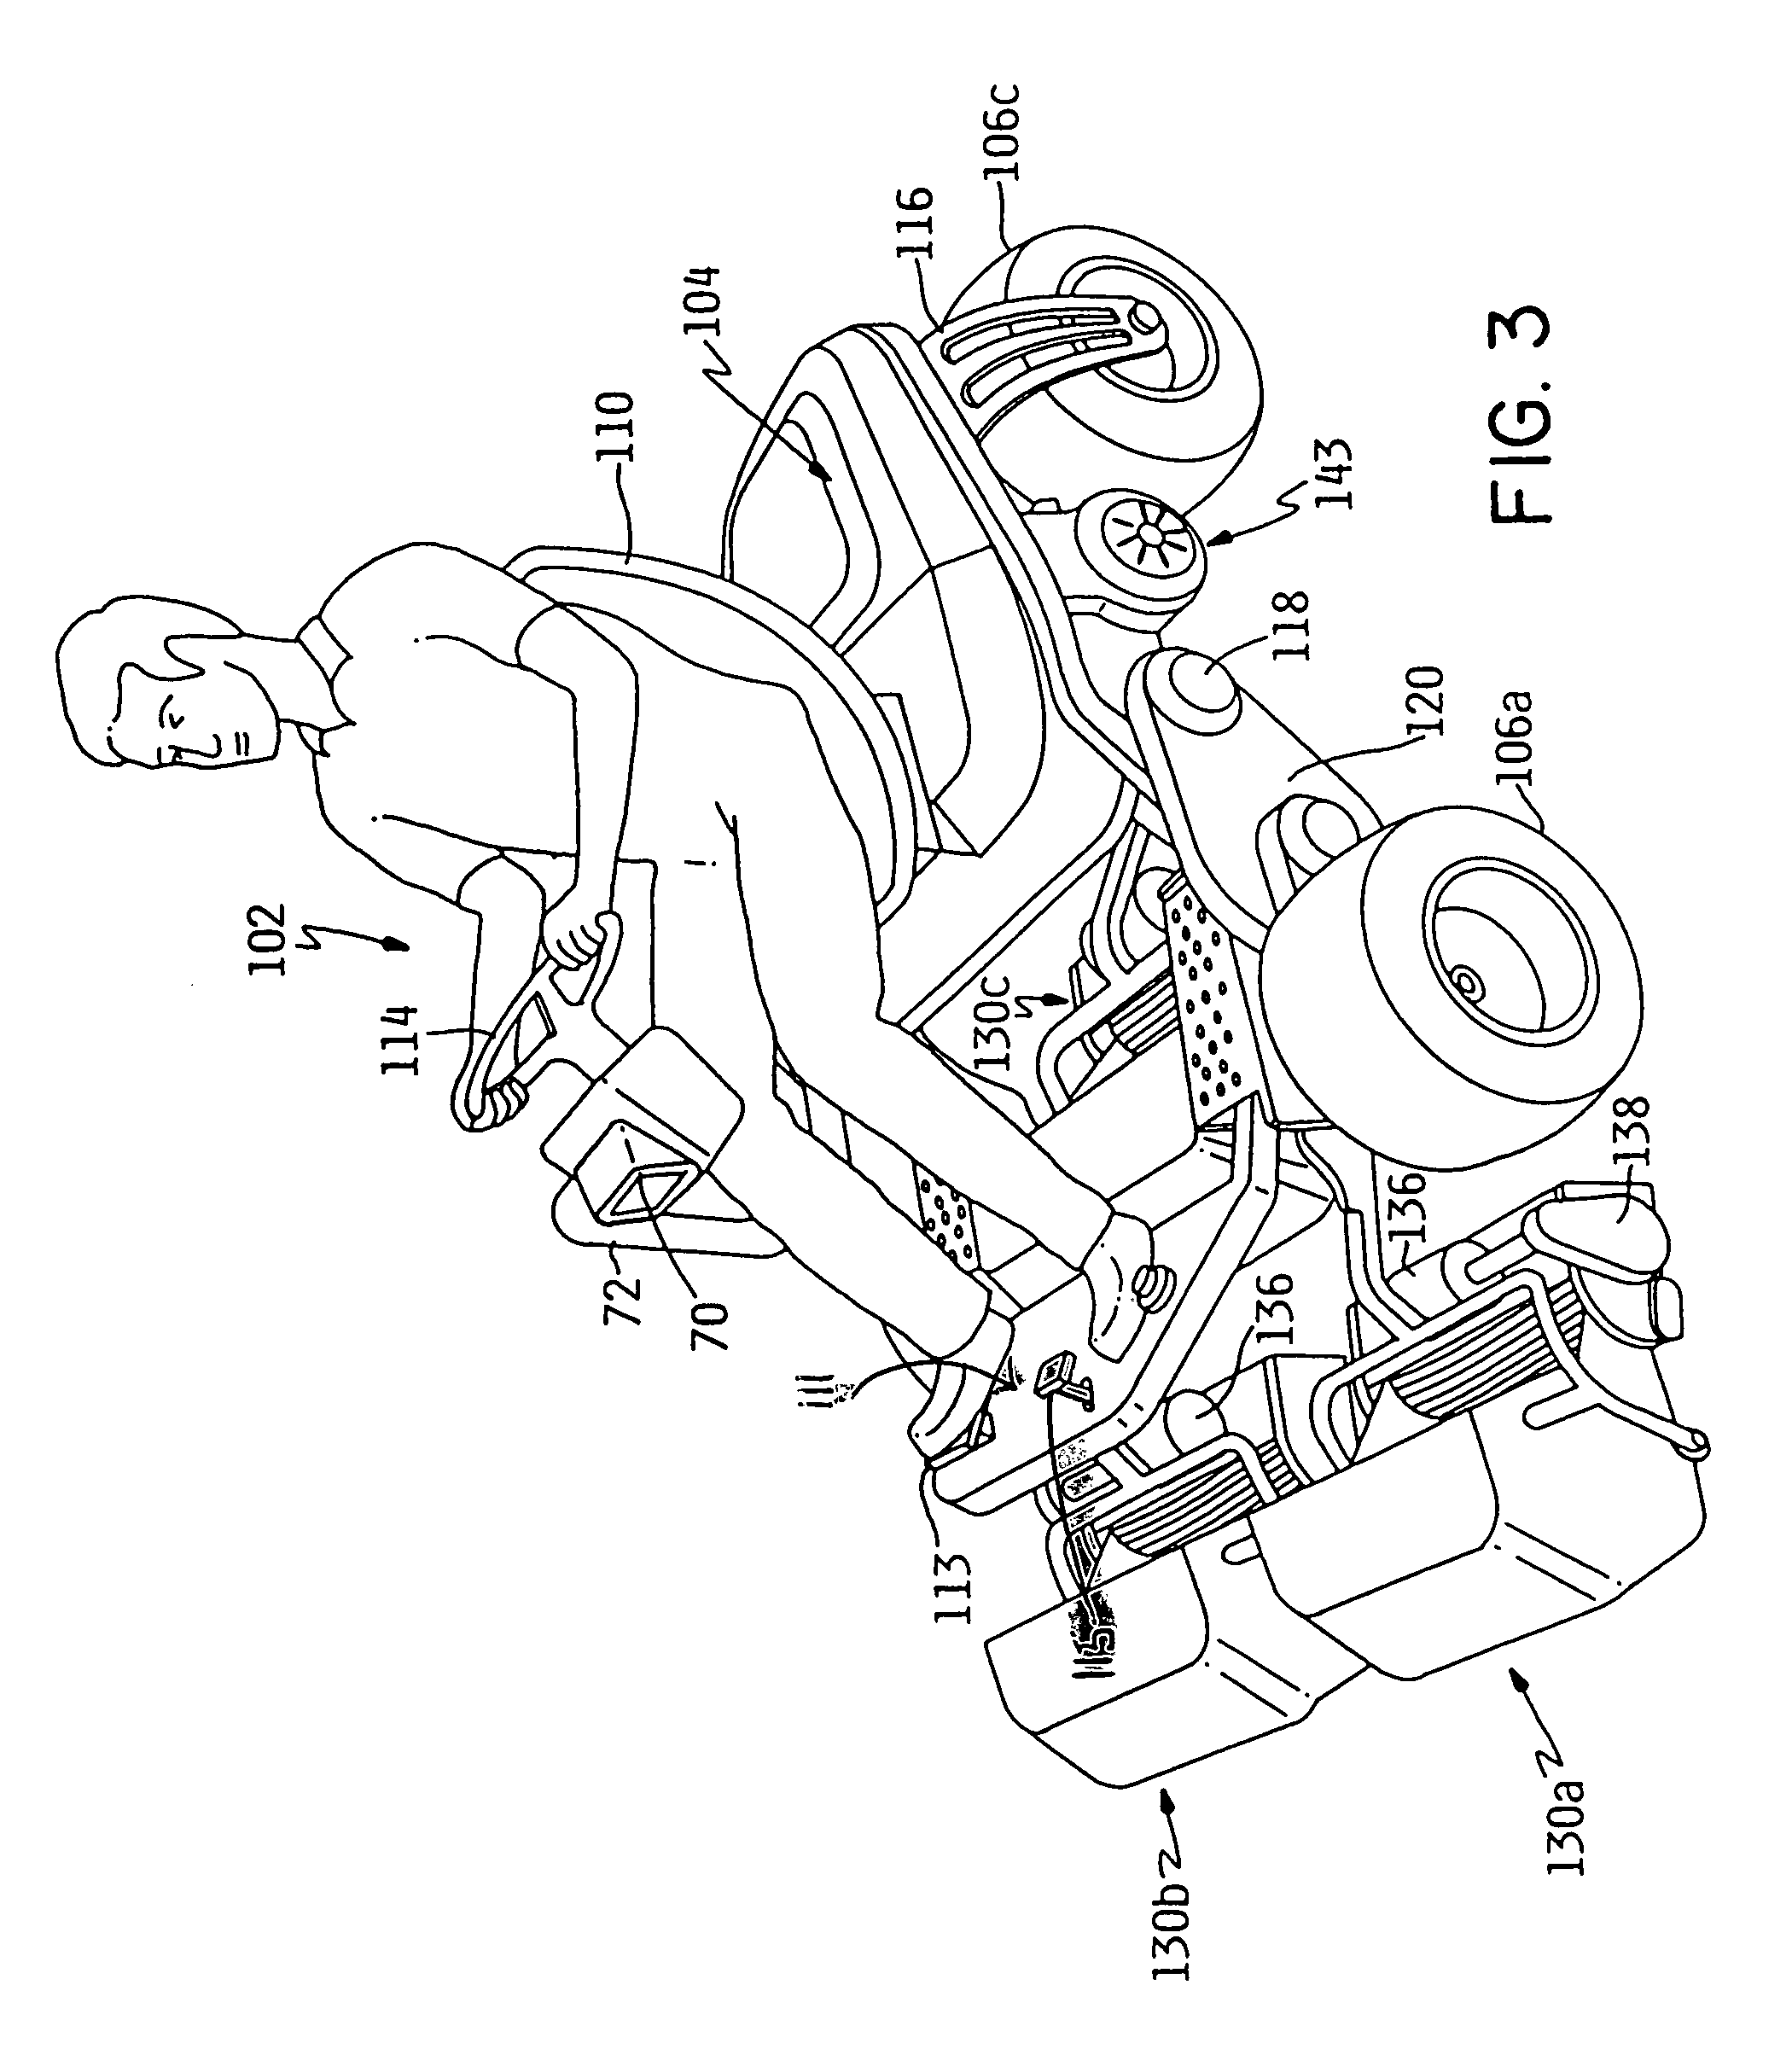 Patent Us7610975 Electric Drive Riding Mower Google Patents Fuse Box On A 2008 Chrysler 300 Location Drawing